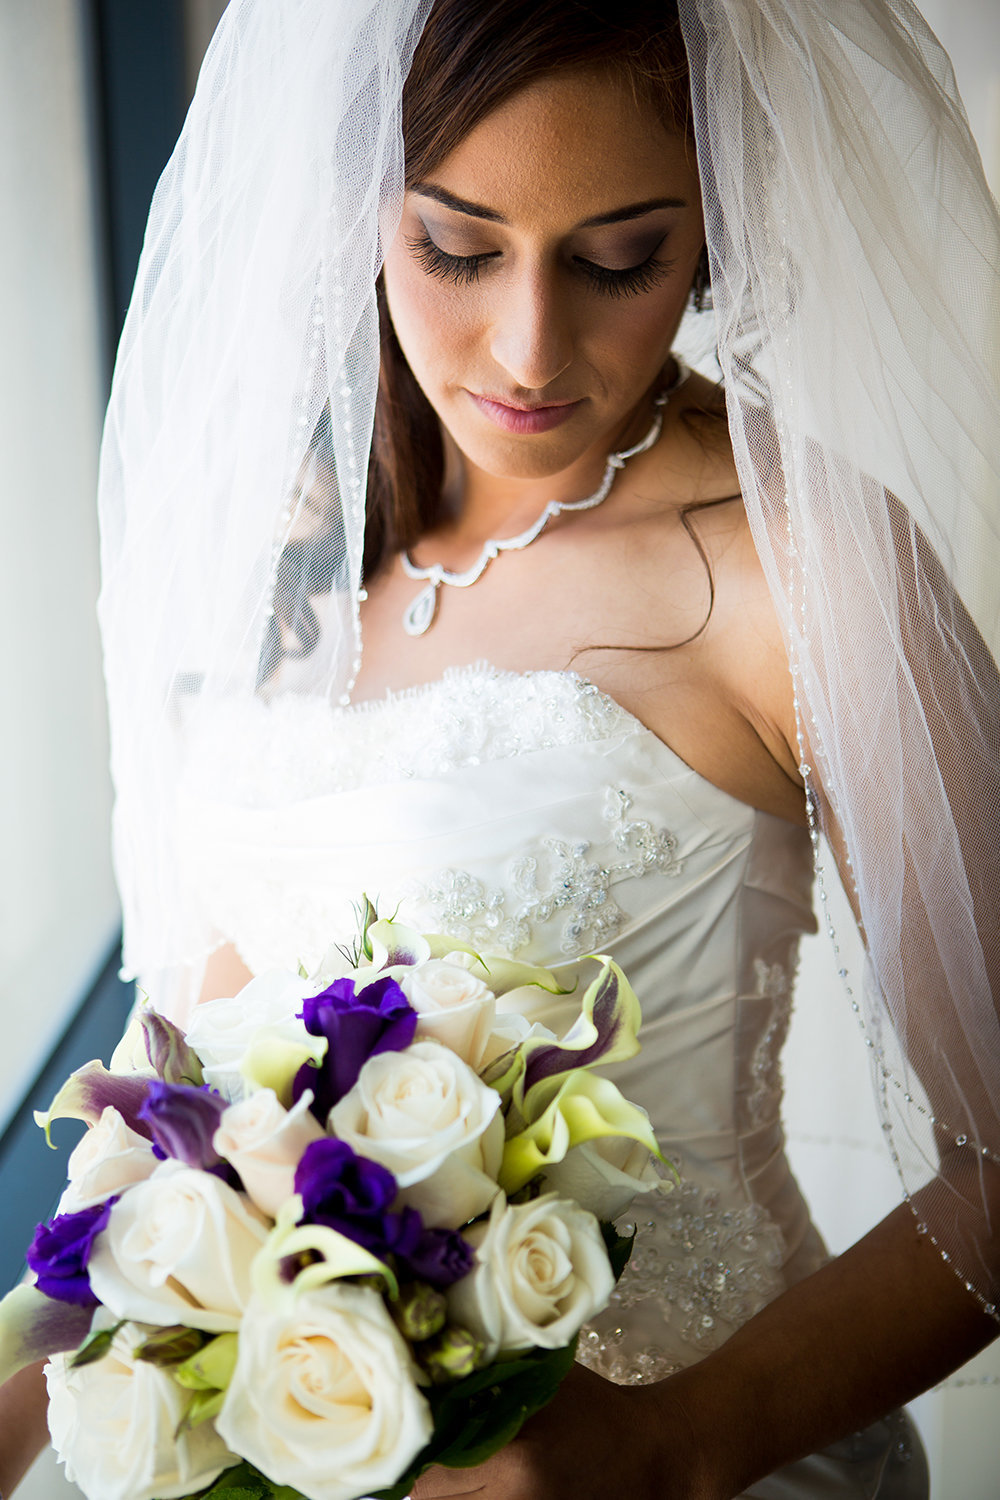 Pensive moment with purple flowers and white roses.